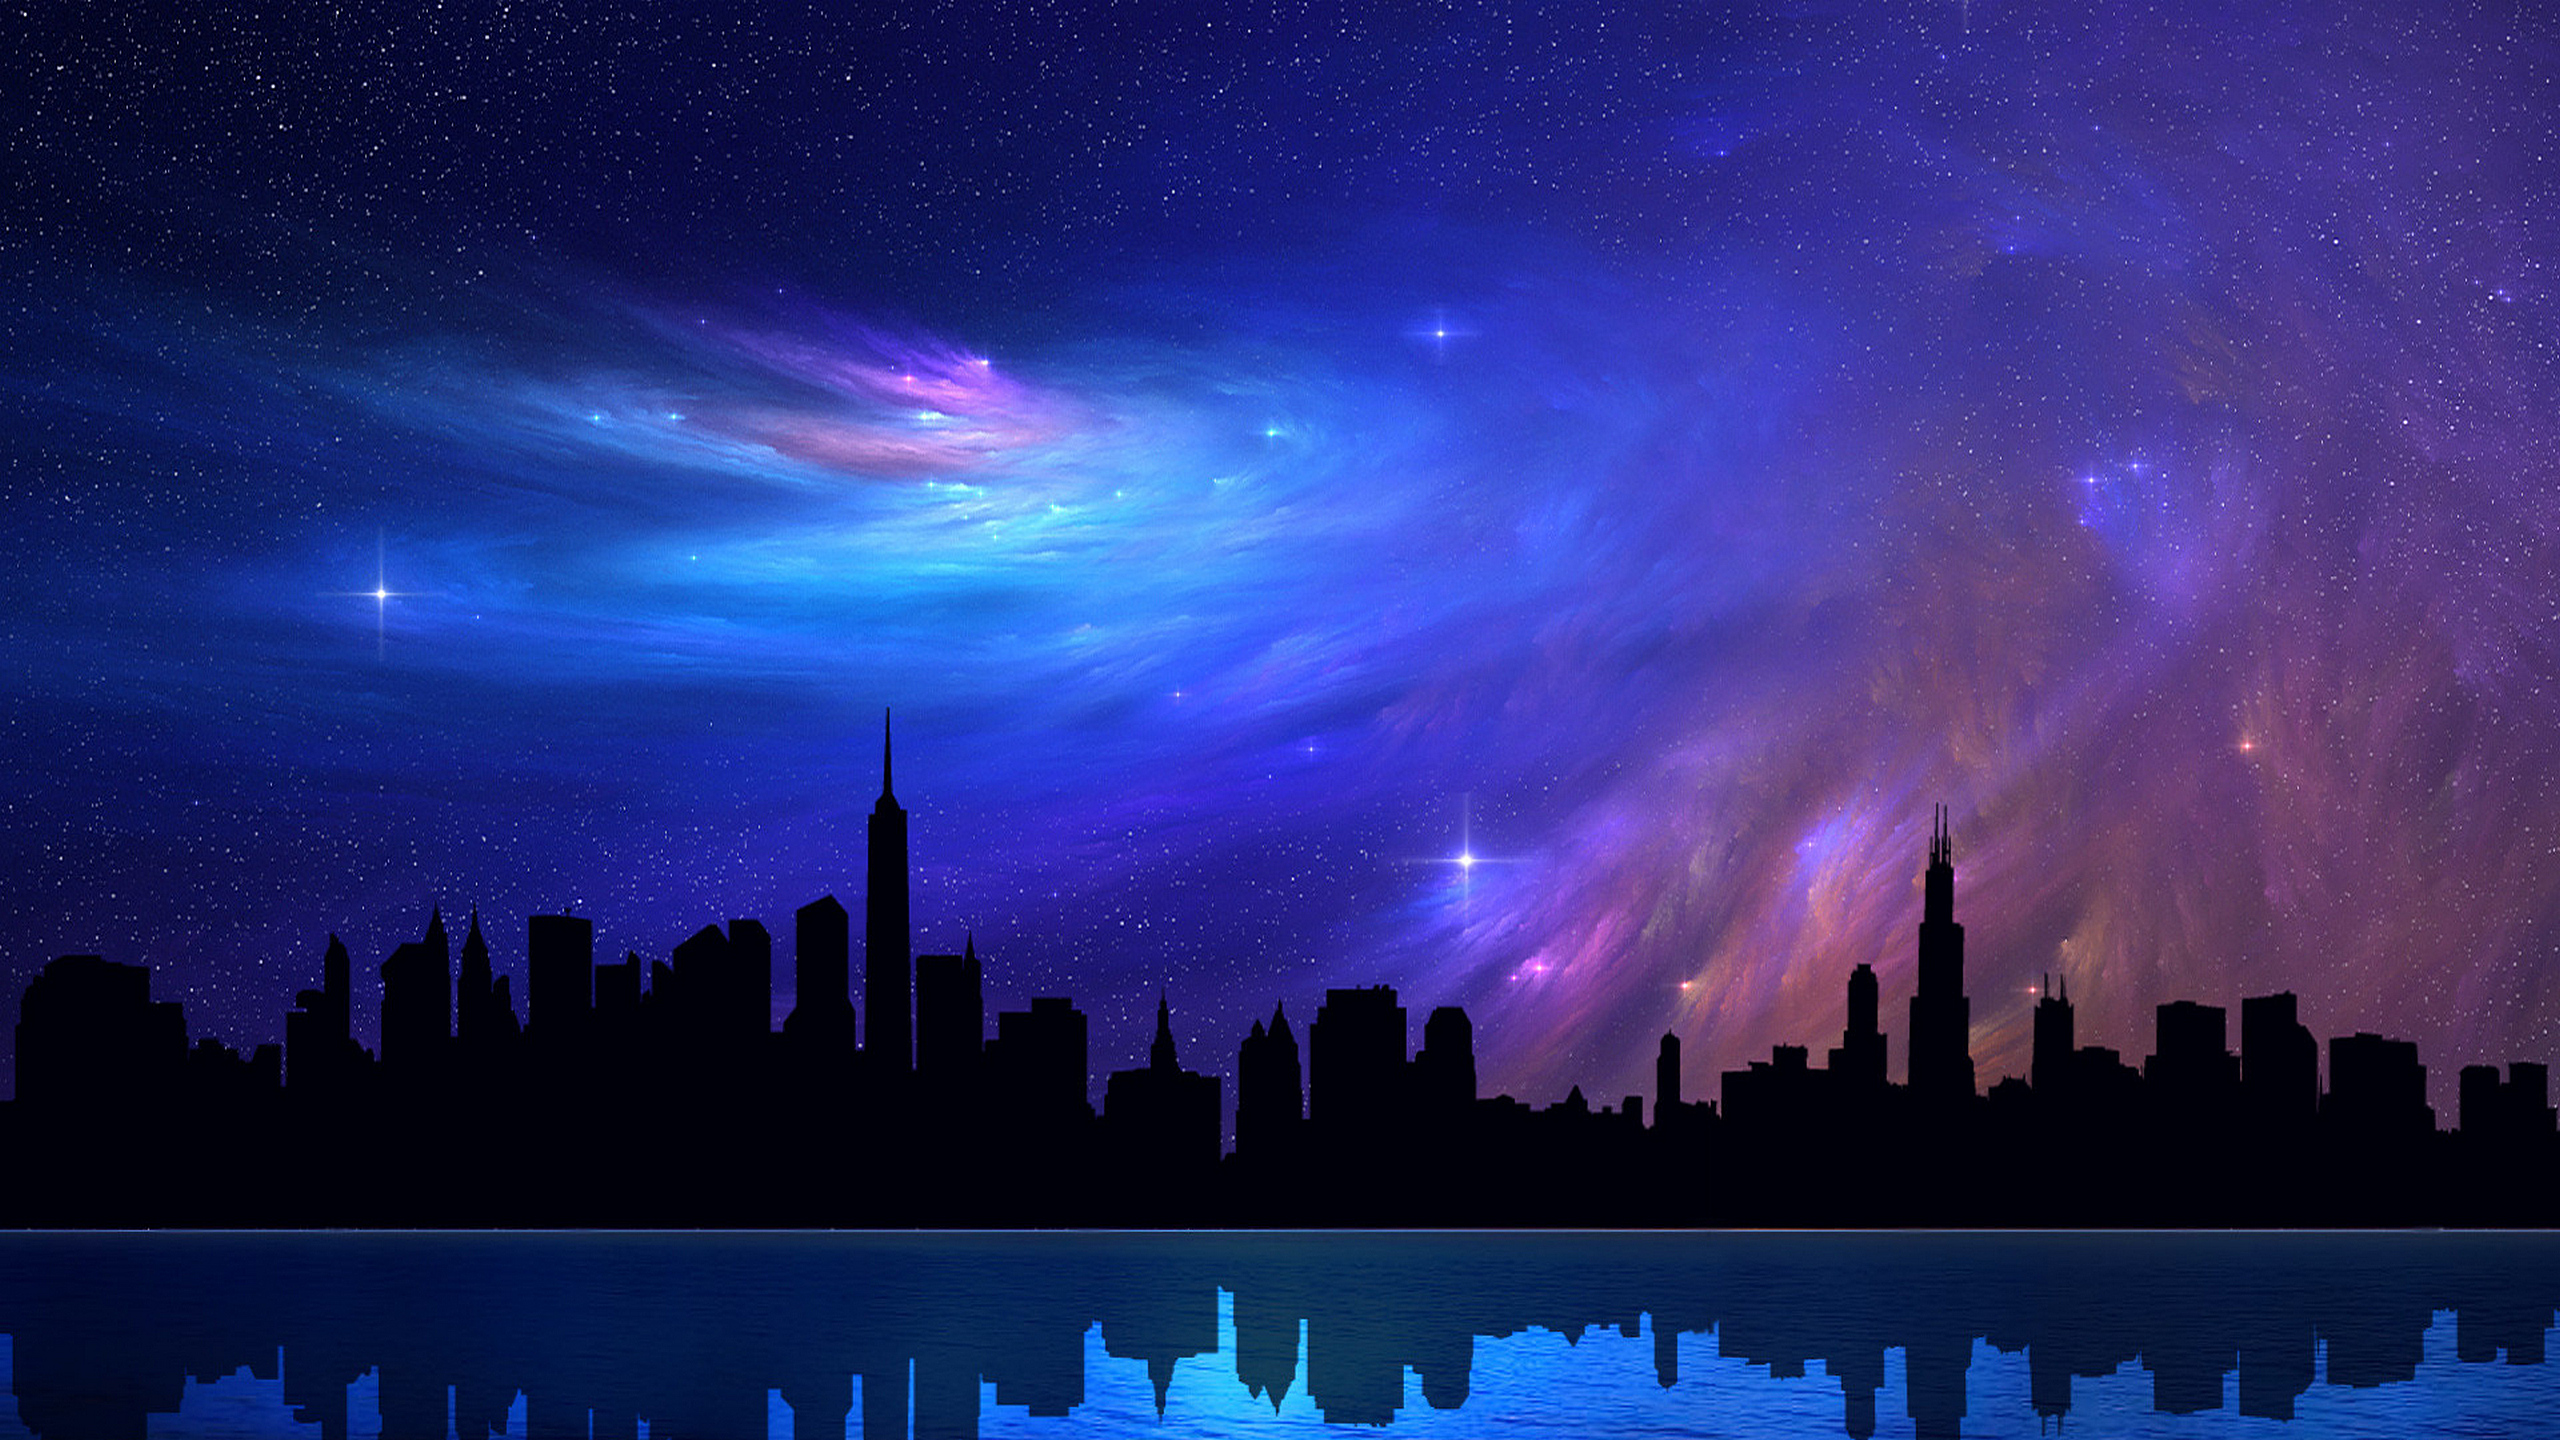 Skyline Cityscape Cool Neon Painted HD Walls Find Wallpapers 2560x1440